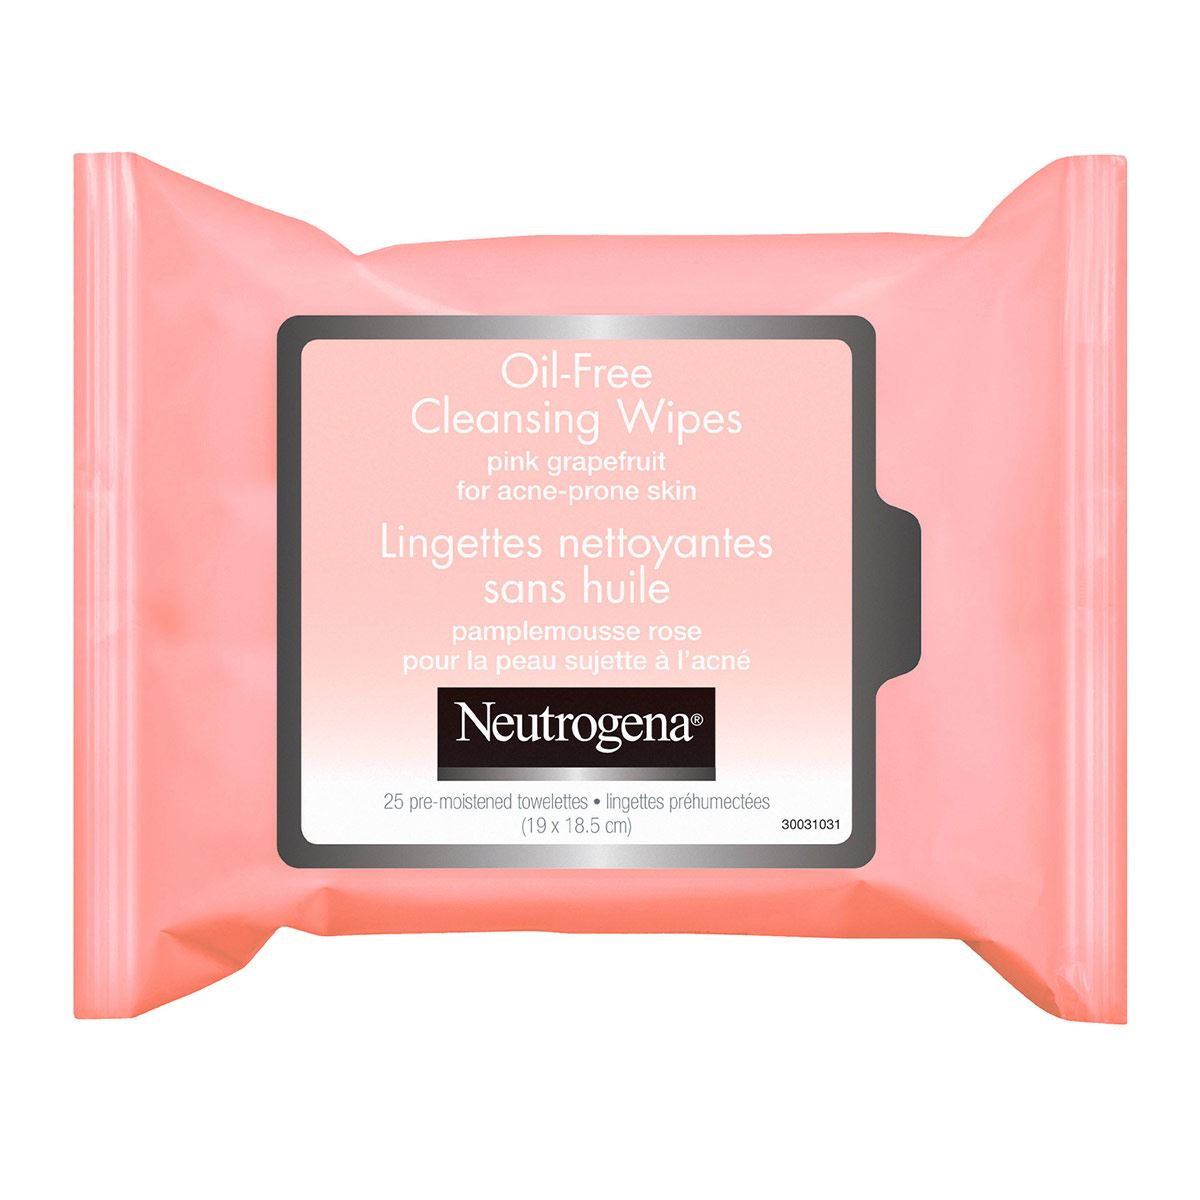 Neutrogena Pink Grapefruit Wipes